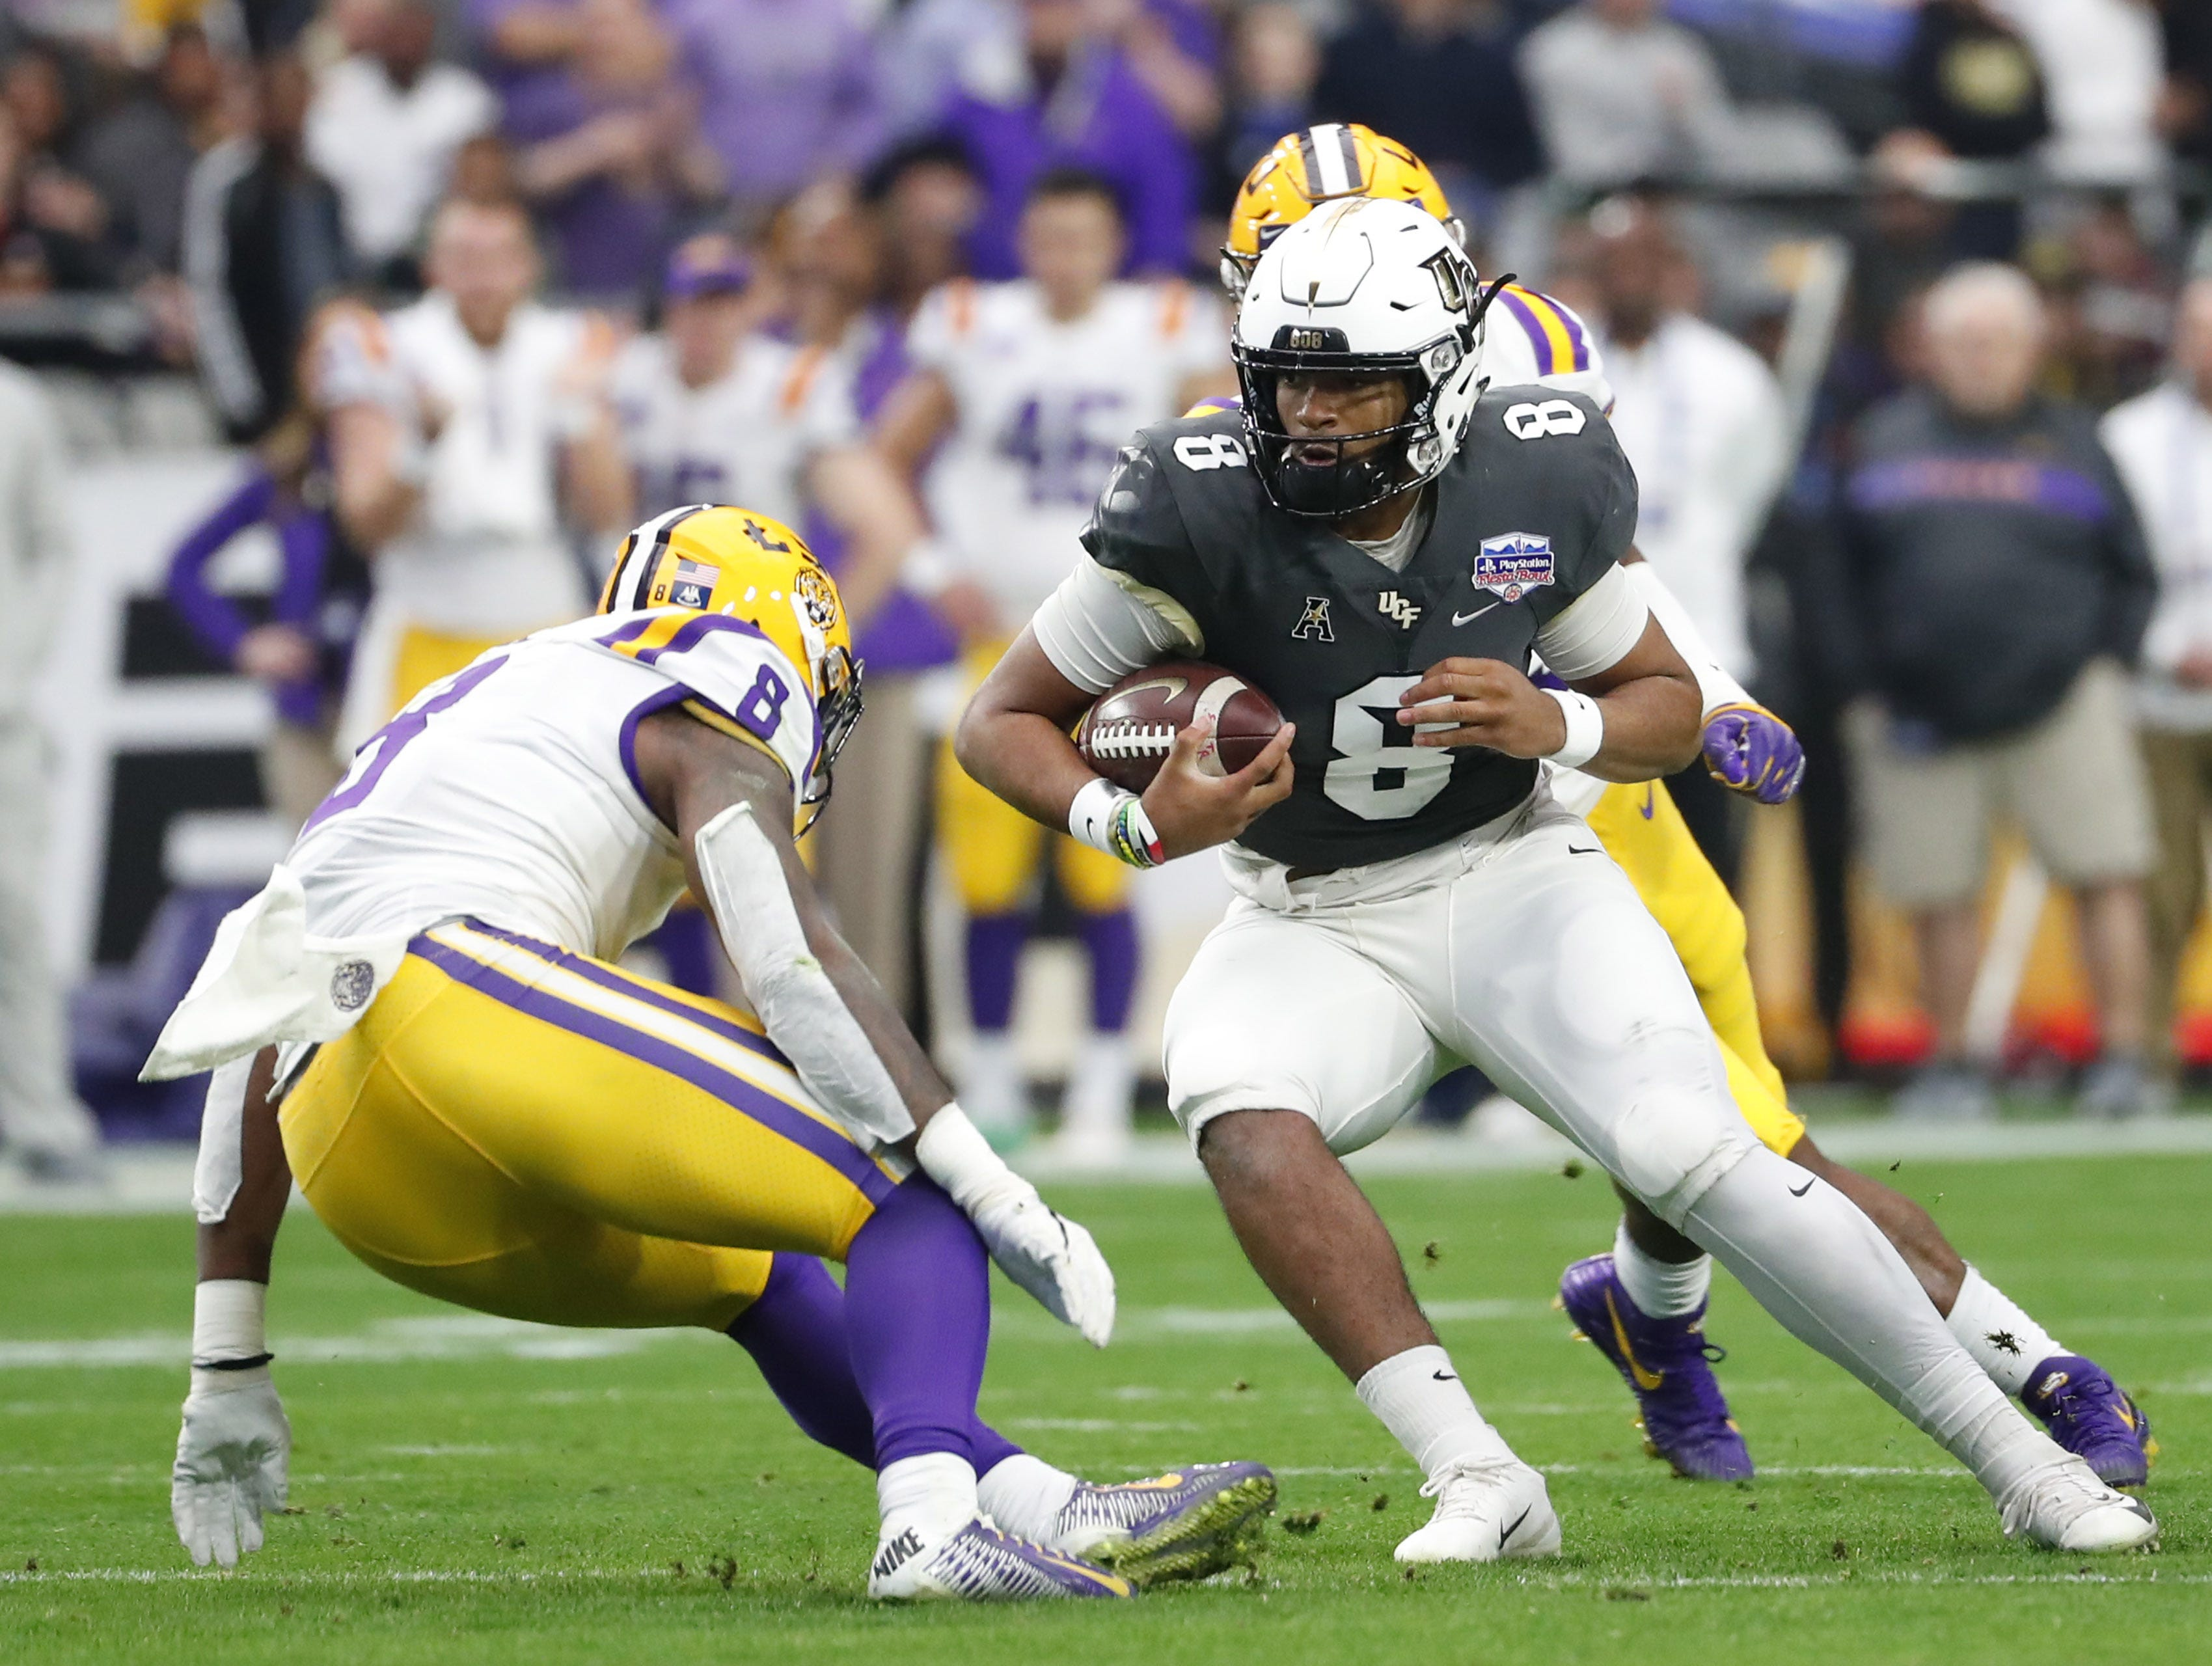 UCF quarterback Darriel Mack Jr. (8) puts a move on LSU linebacker Patrick Queen (8) during the Fiesta Bowl in Glendale January 1, 2019.